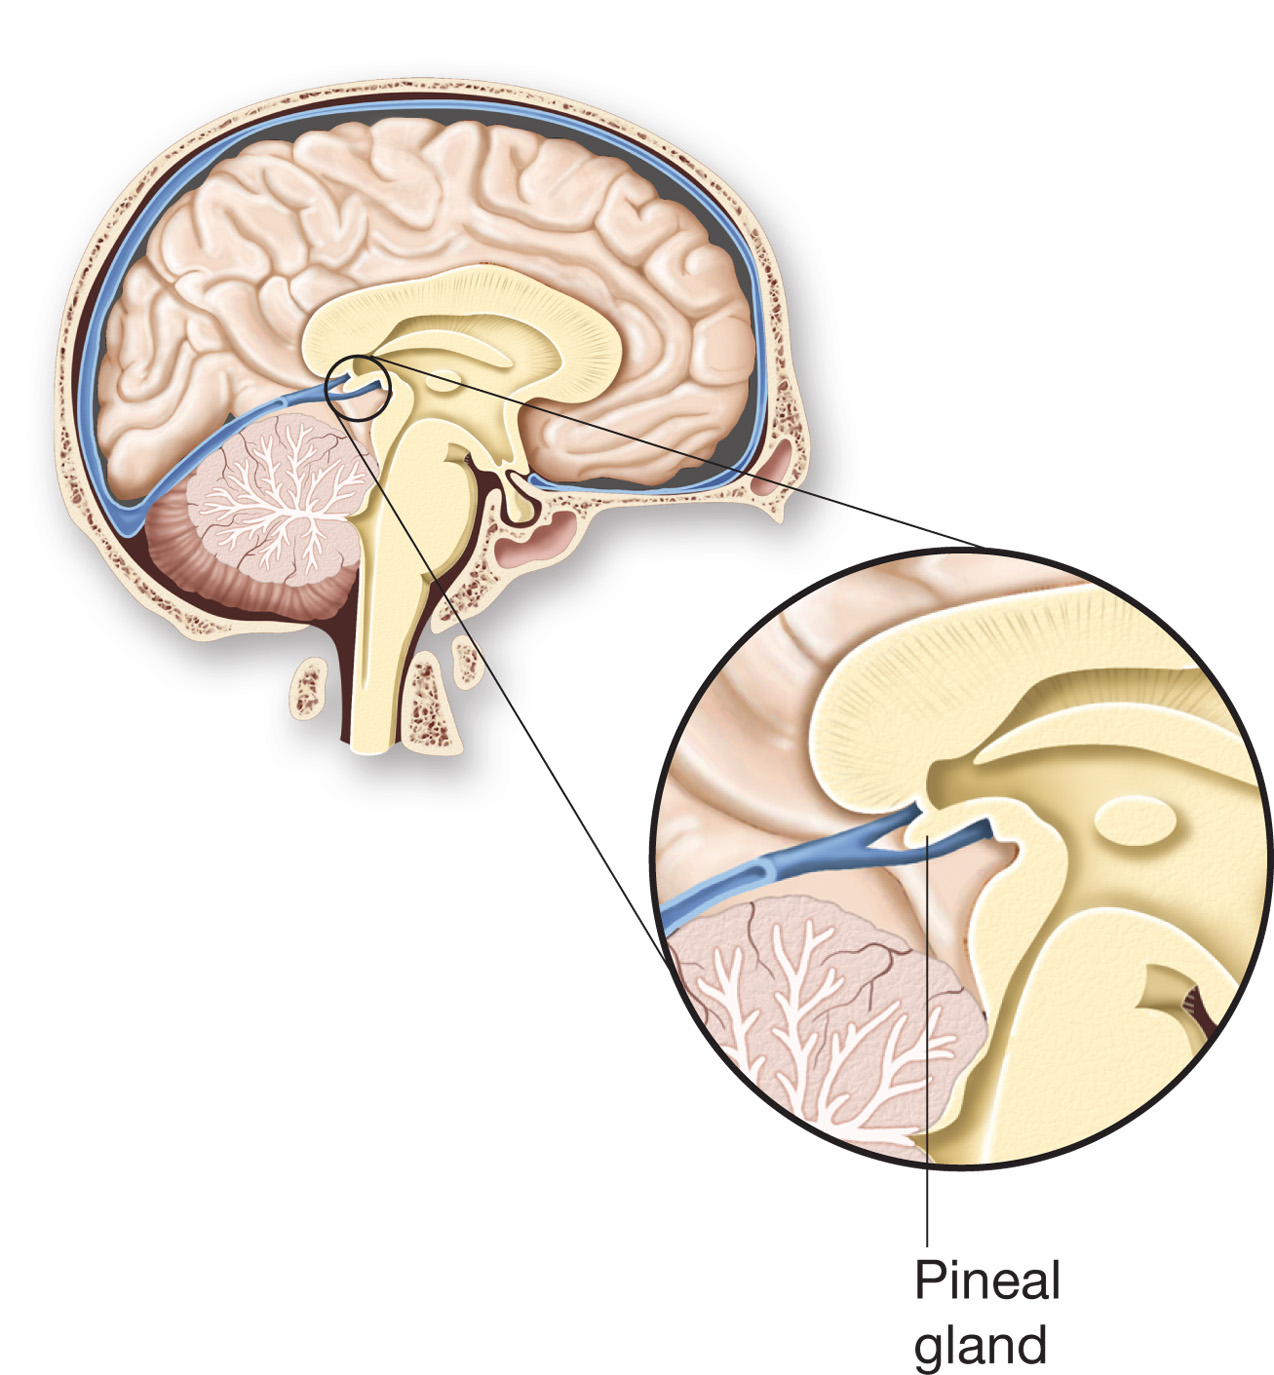 A study of pineal gland | College paper Writing Service zwessayzwdh ...